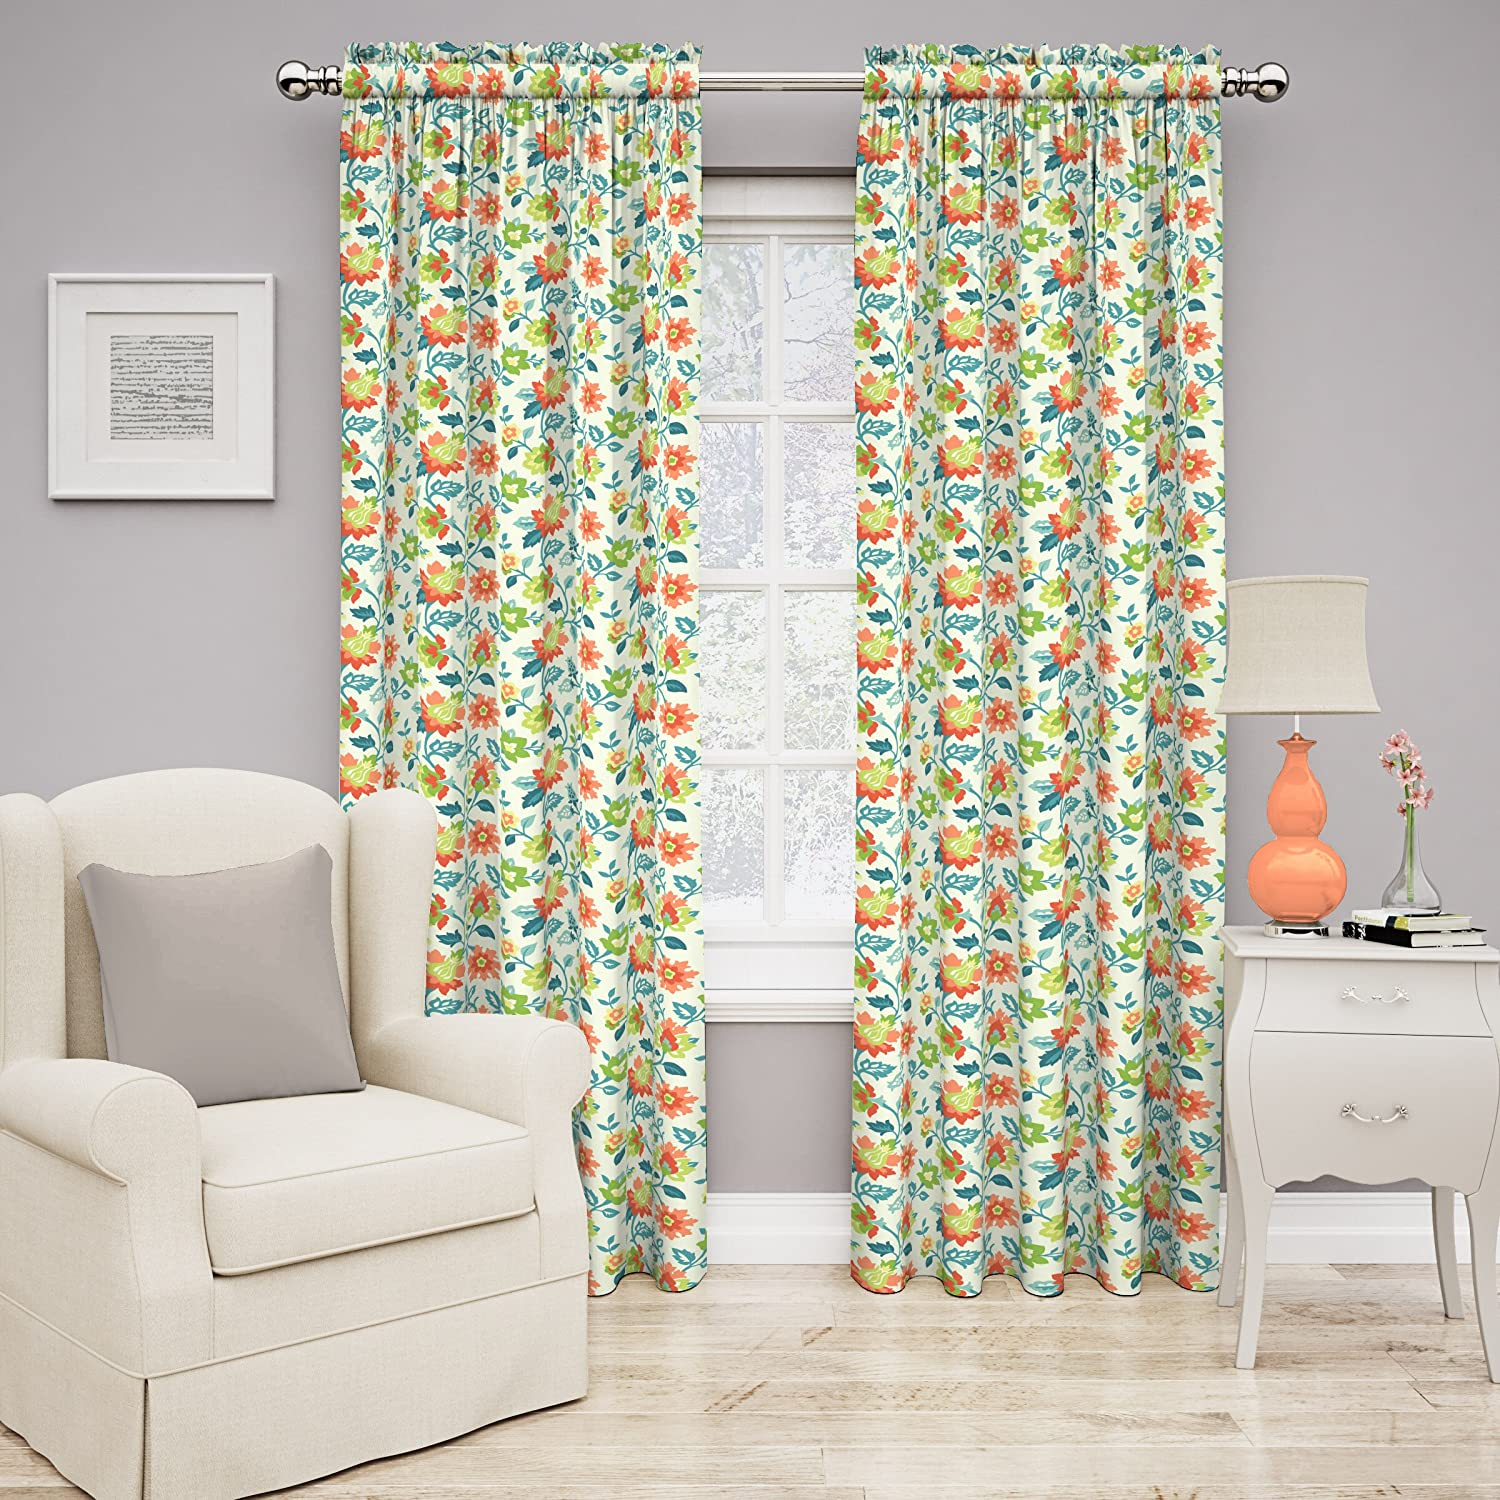 Traditions by Waverly 14969052084CPI Set in Spring 52-Inch by 84-Inch Floral Single Window Curtain Panel, Capri